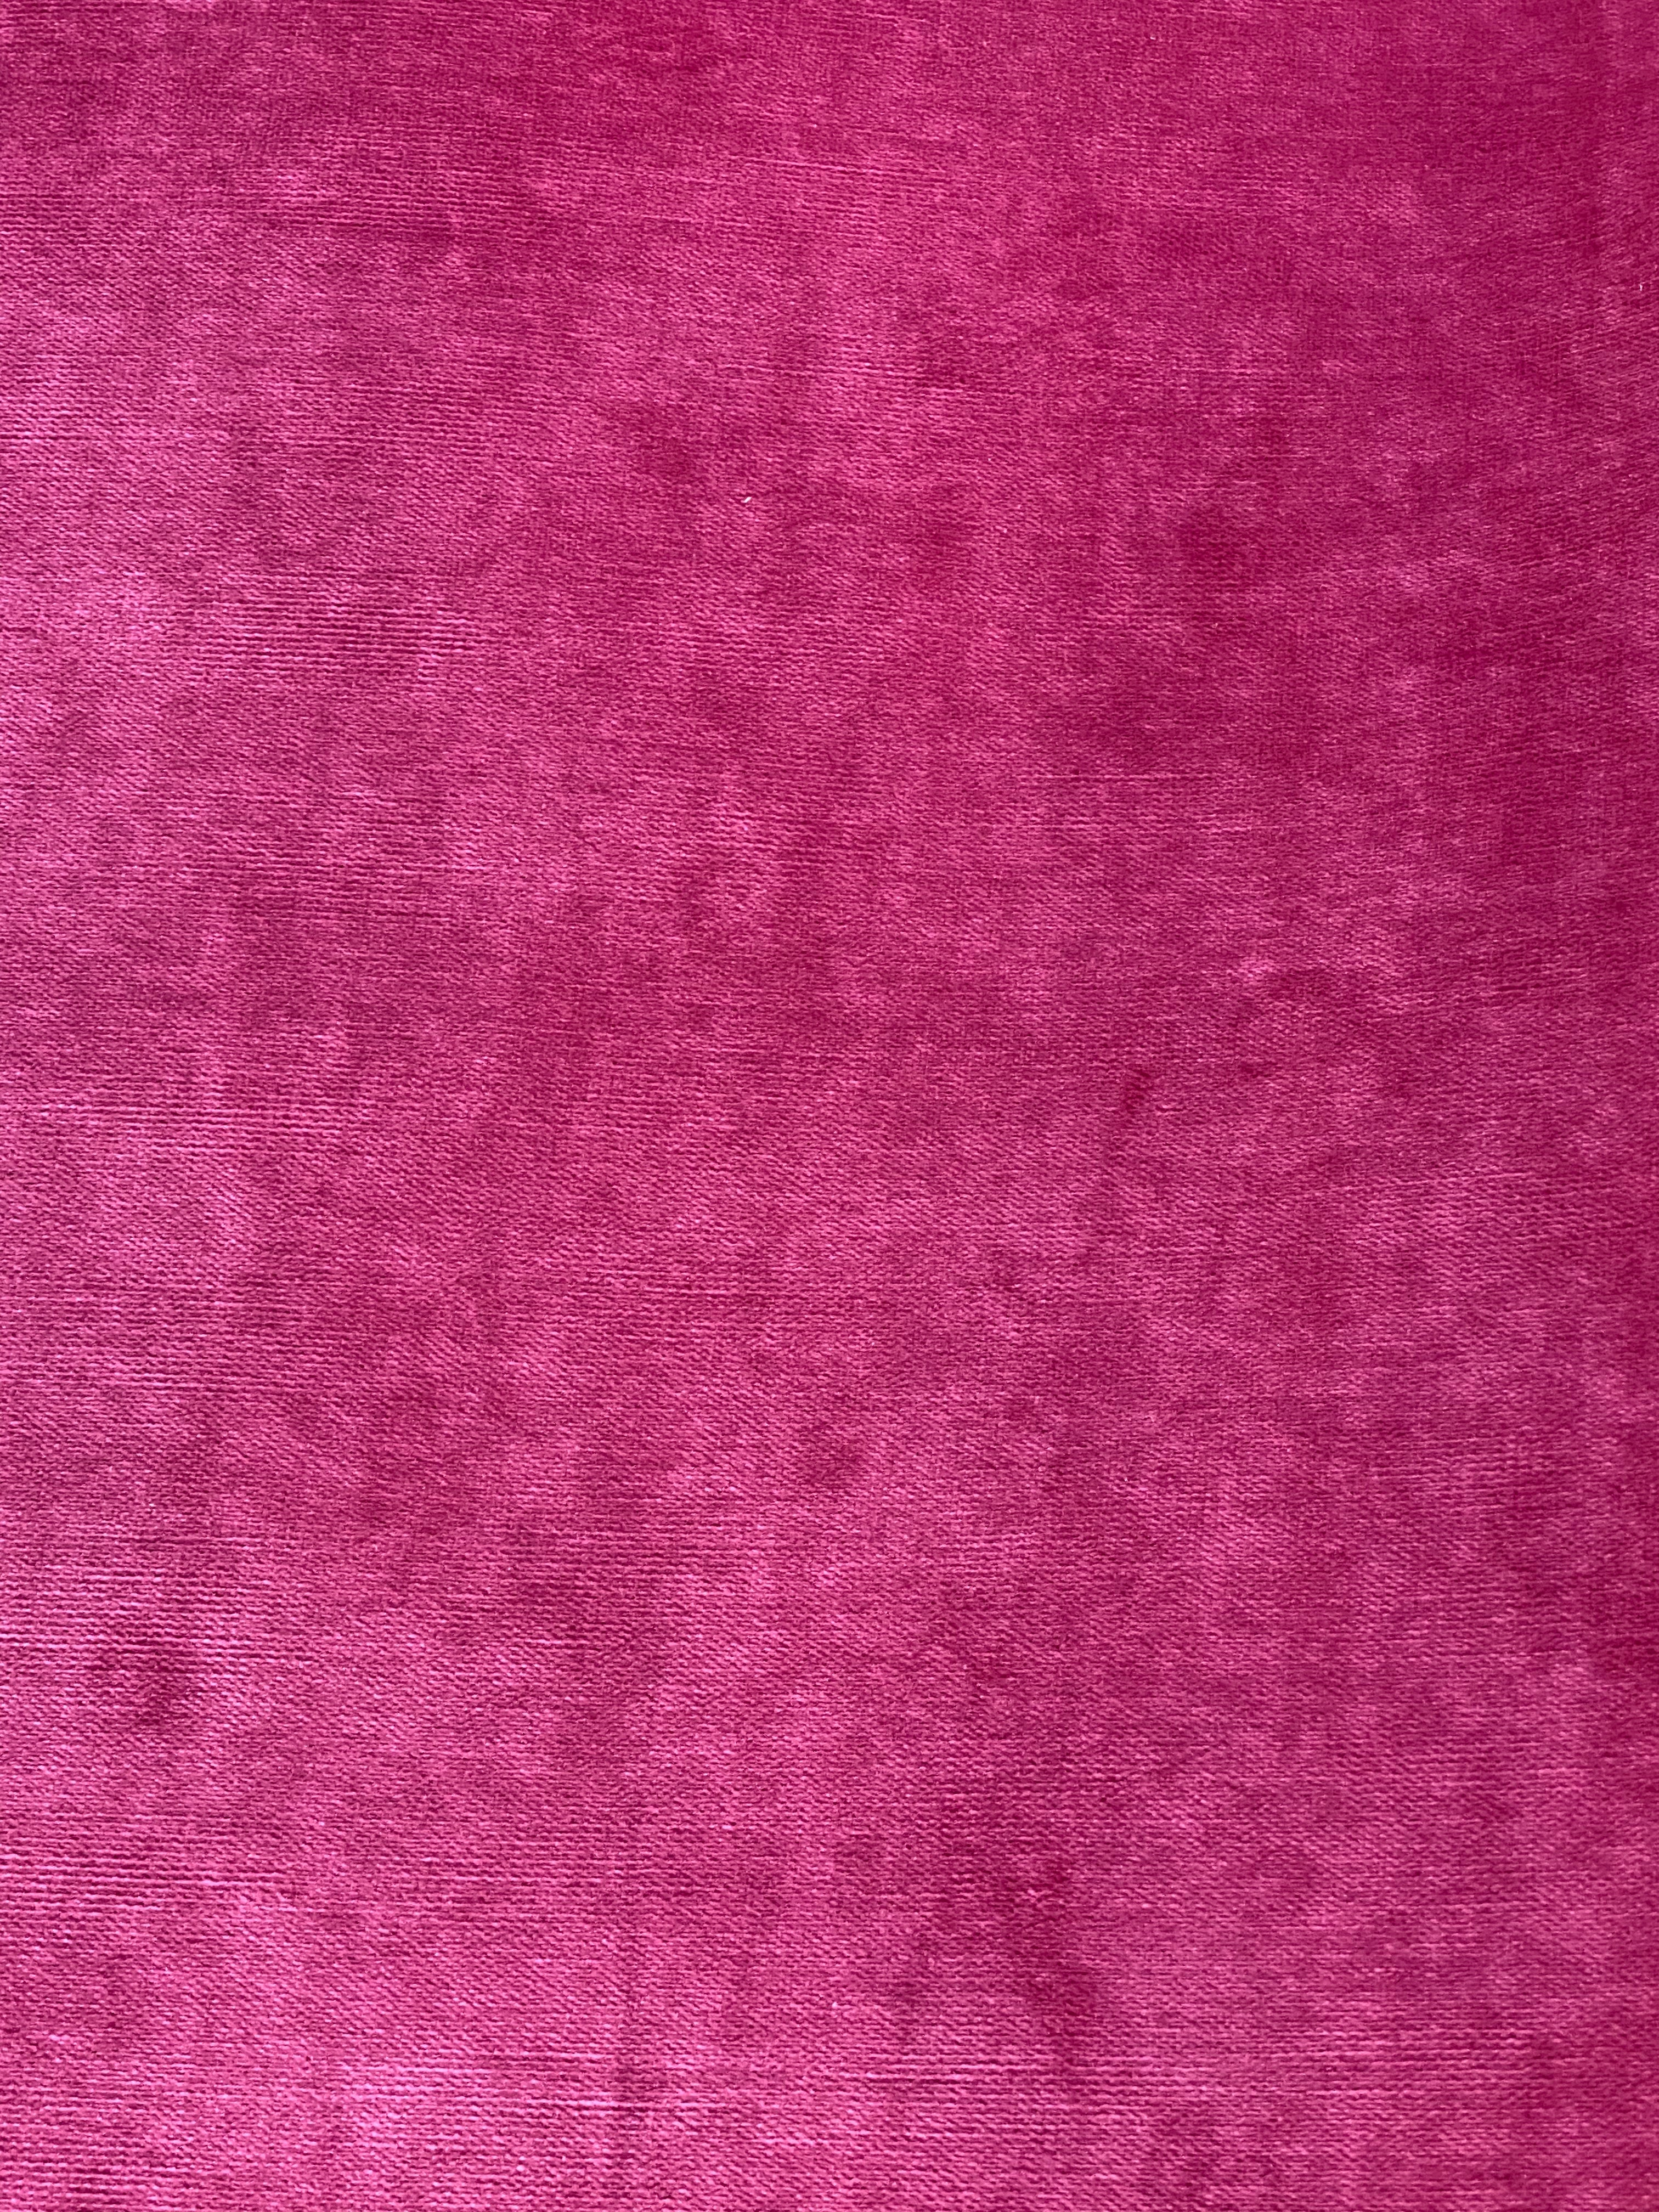 NEW Designer Upholstery Heavyweight Velvet Fabric - Fuchsia